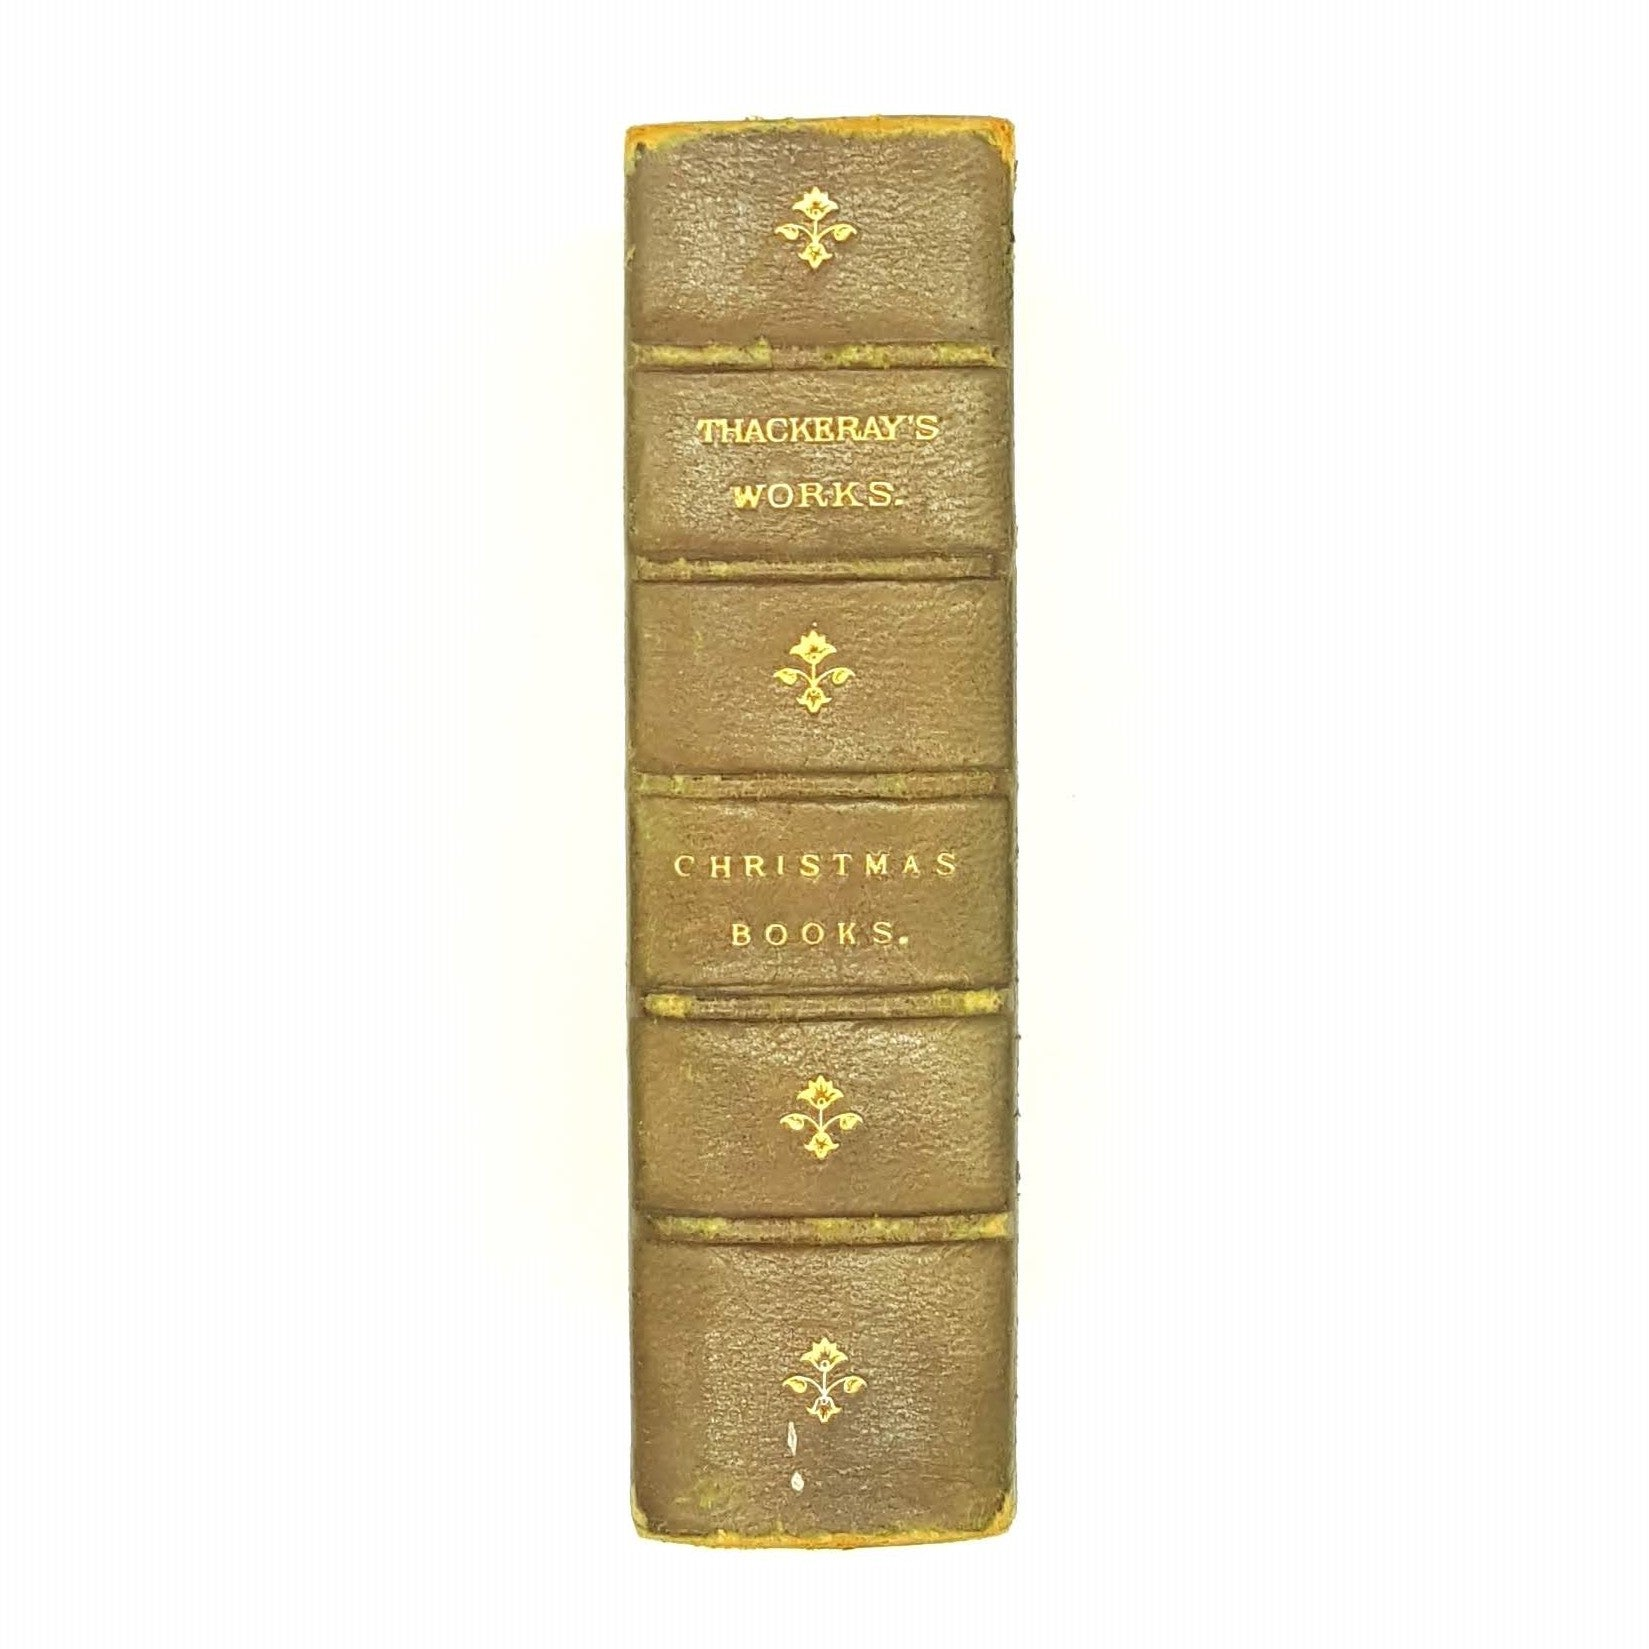 The Christmas Books by William Makepeace Thackeray - Illustrated Volume 1 Country House Library